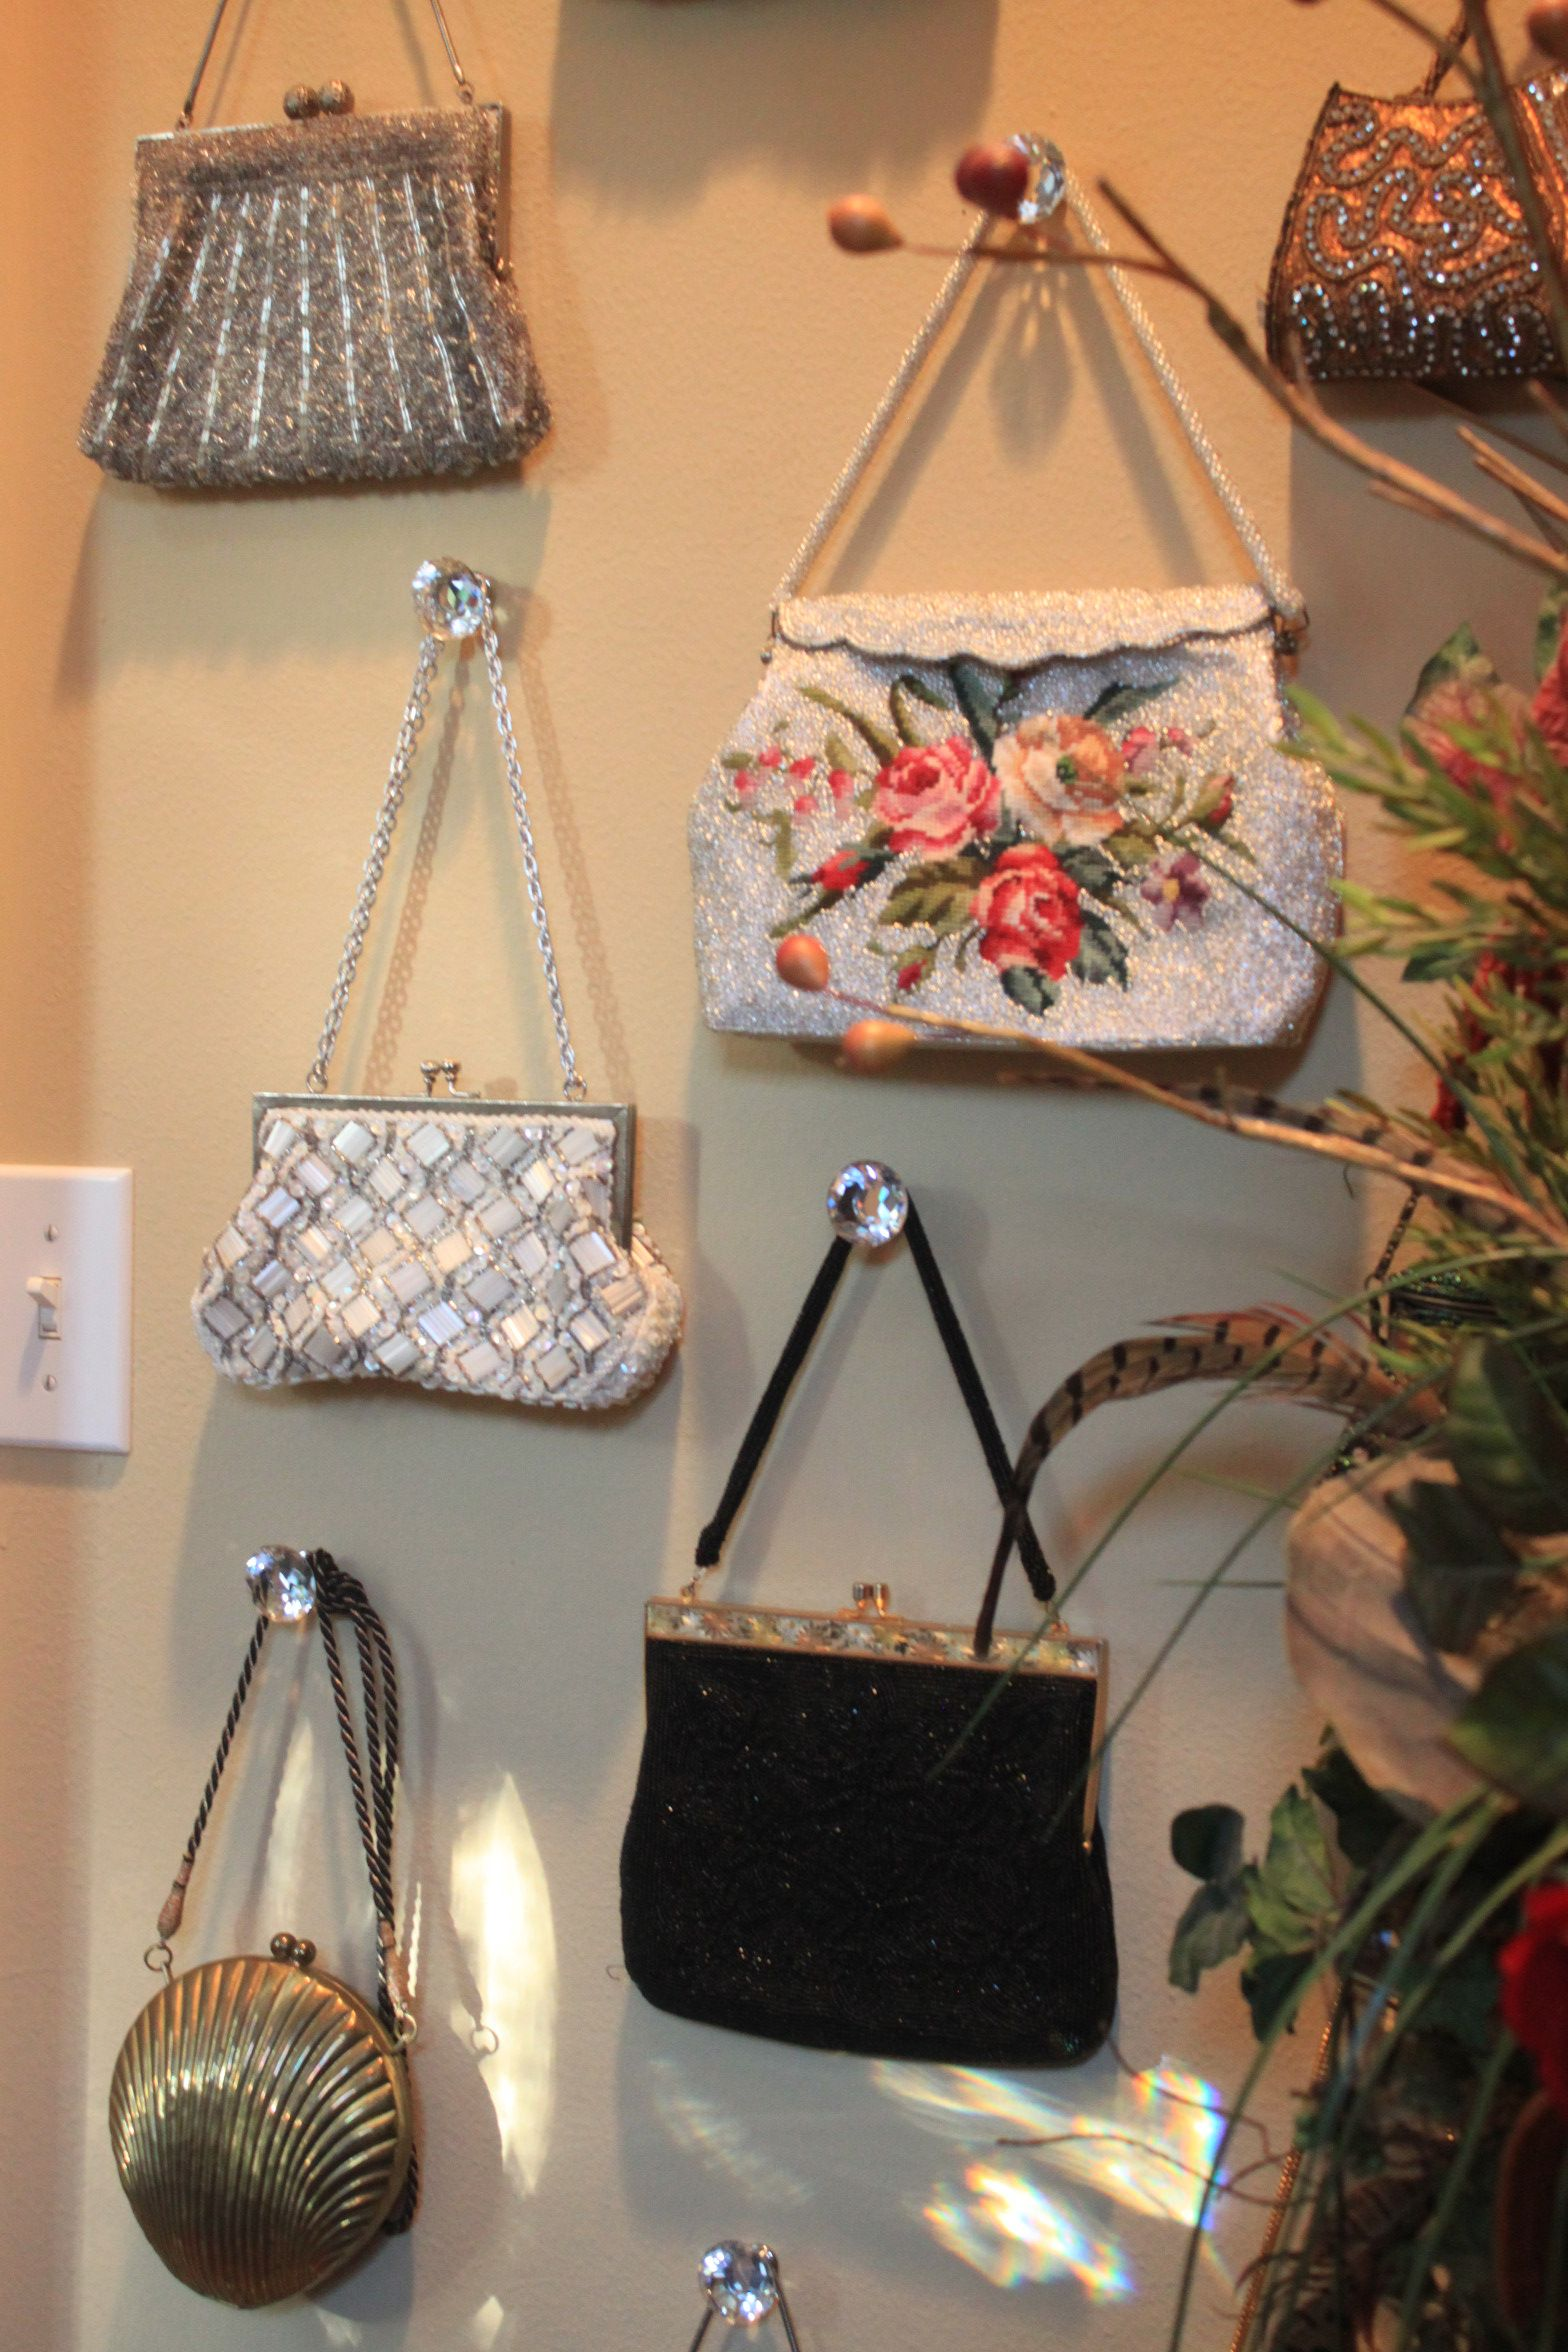 Ideas For Hanging Purses I Bought Similar Knobs Shown Here At Hobby Lobbyi'm Connecting .